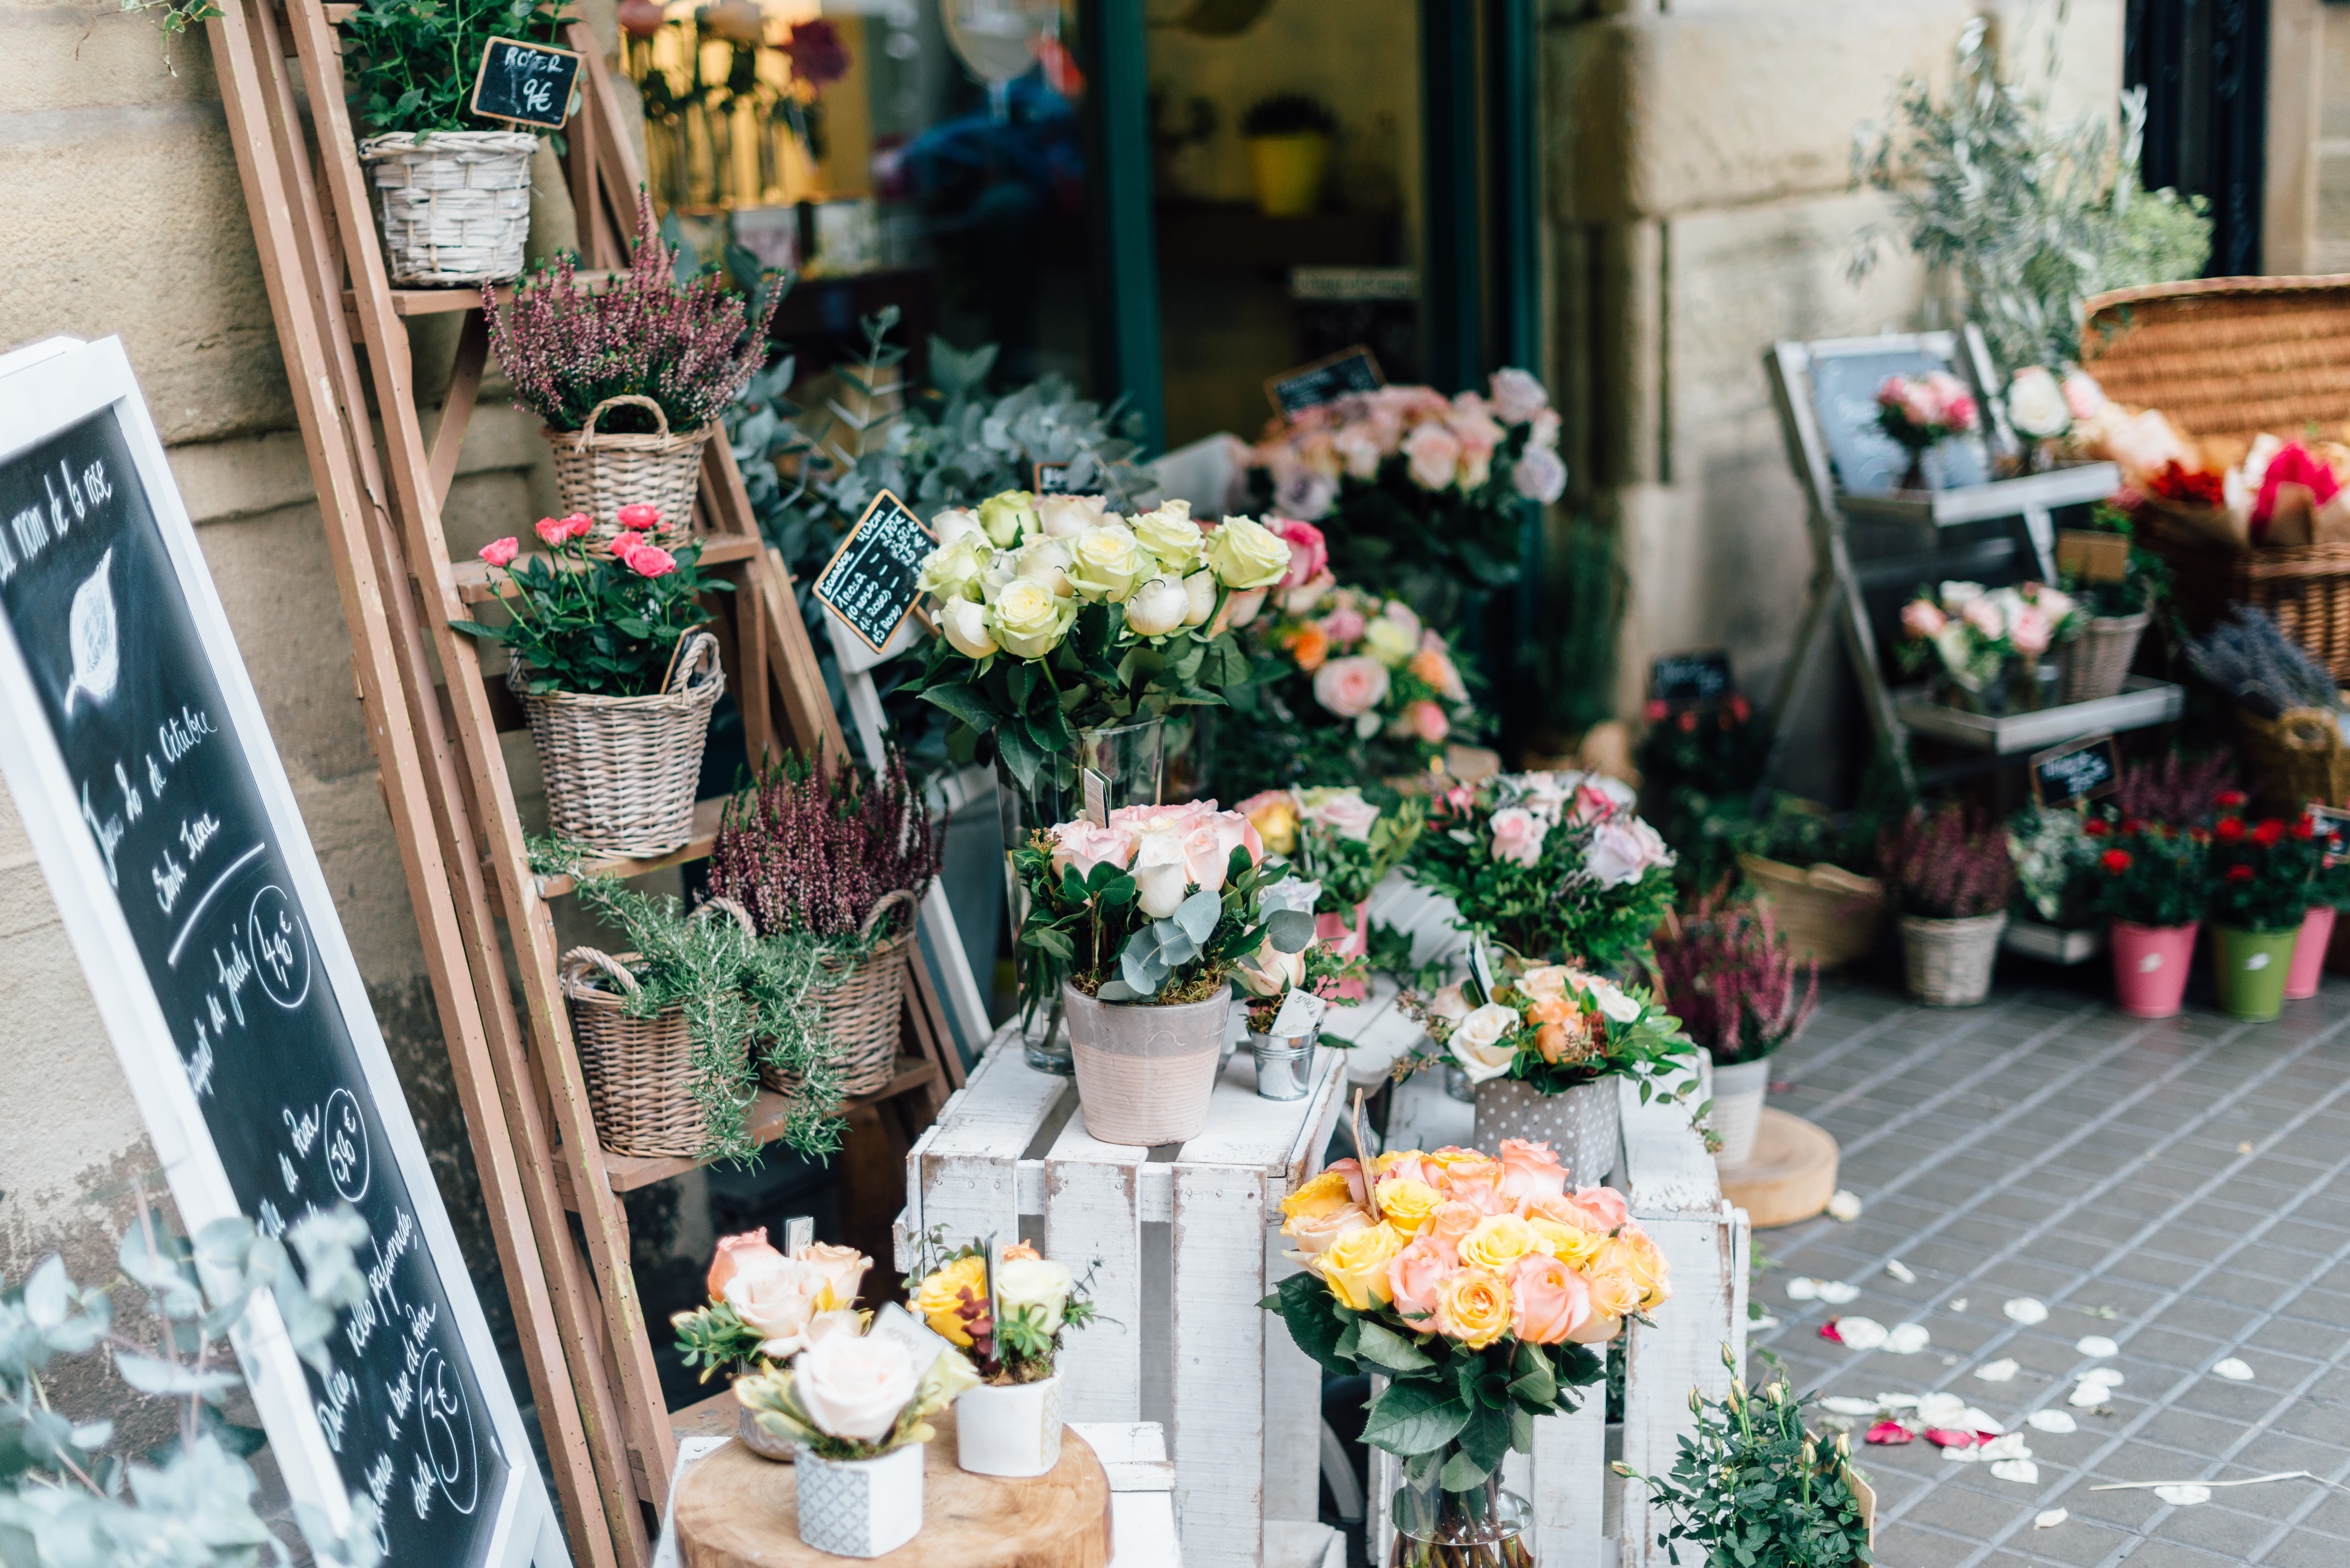 Pots and vases with various types of flowers at the entrance to the florist's